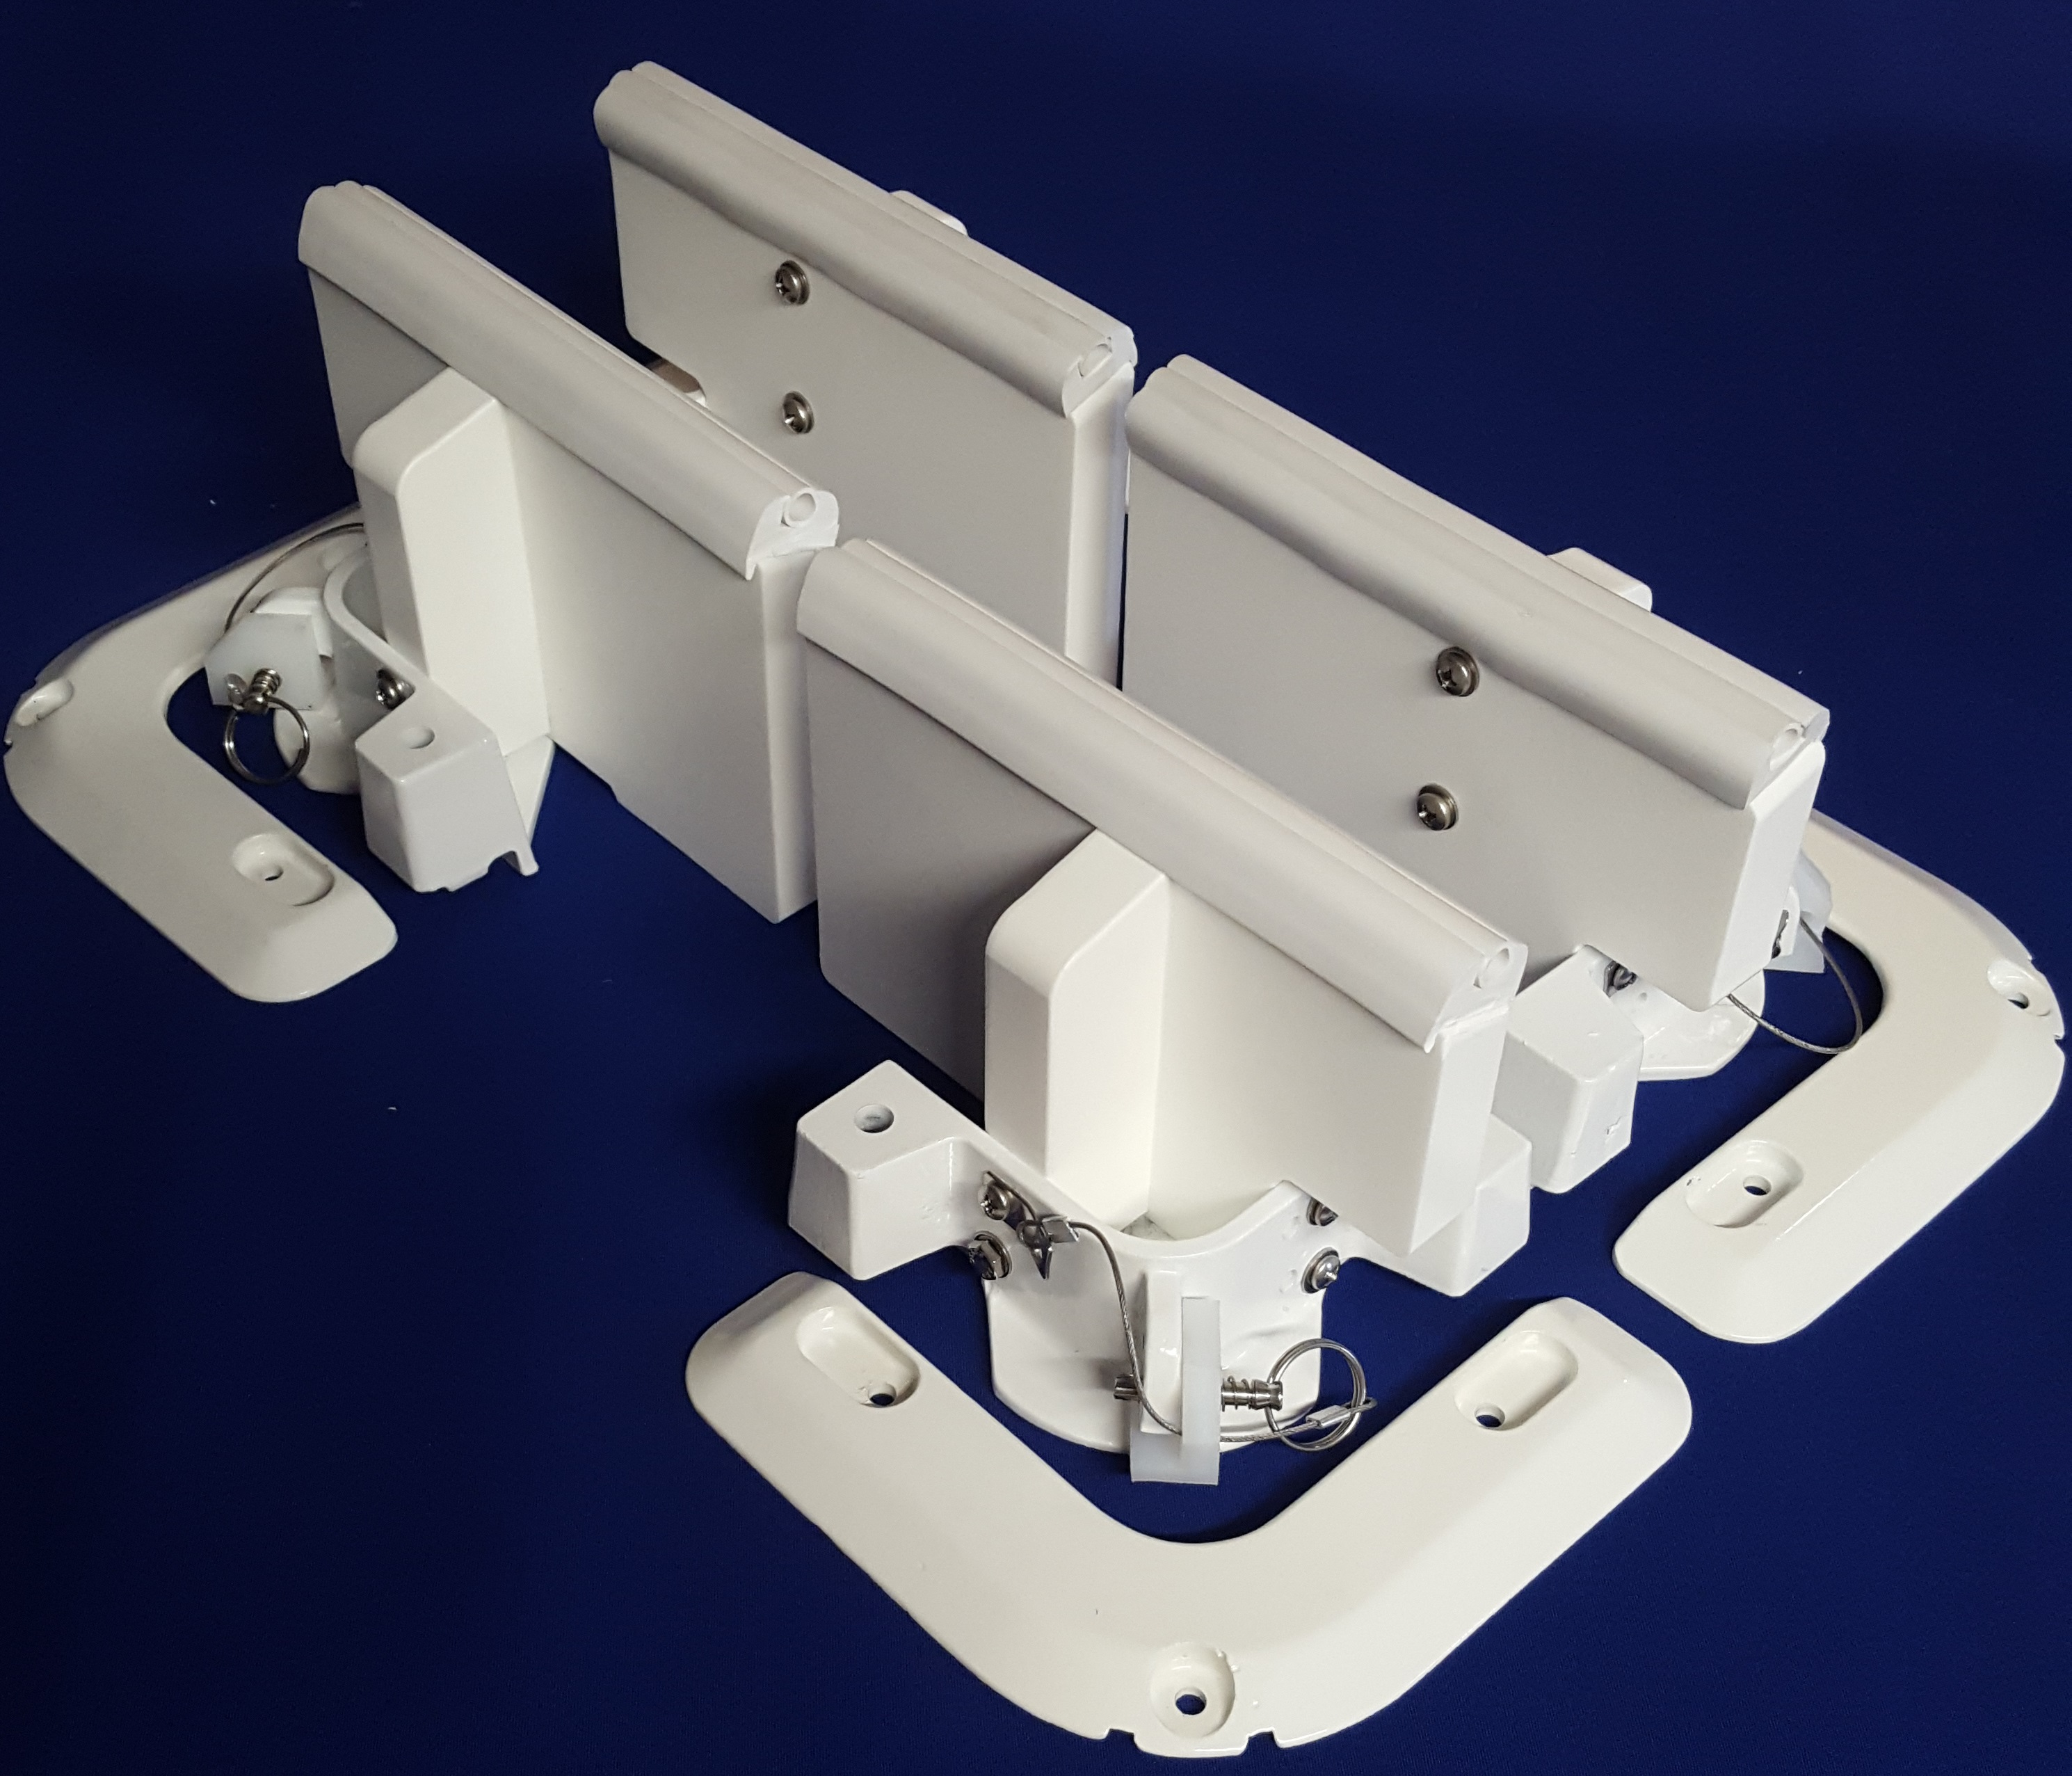 Dinghy tender chock davit system